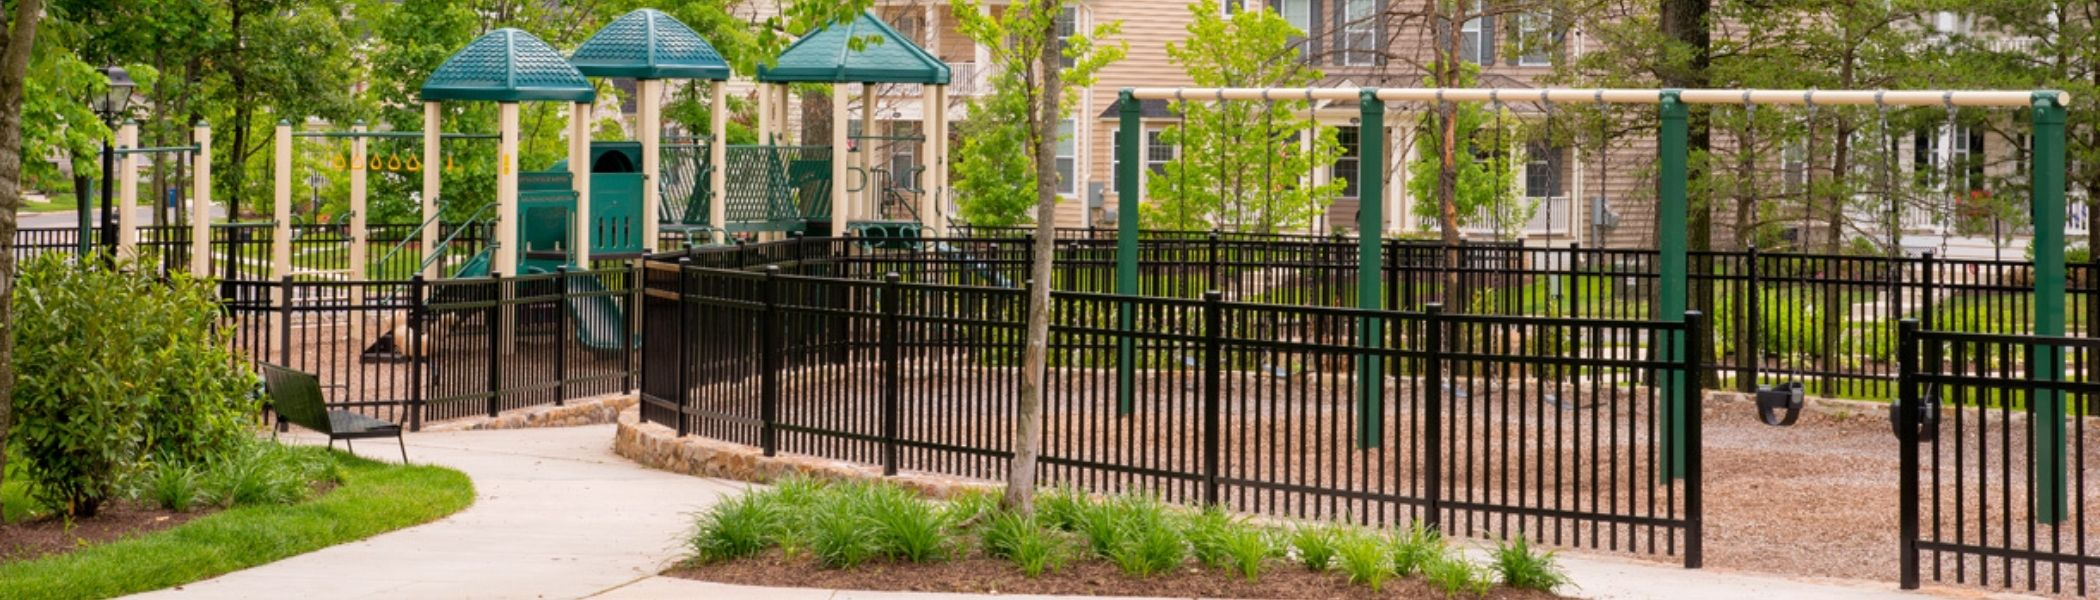 Commercial Drainage and Erosion Control Solutions in Maryland, Virginia & DC